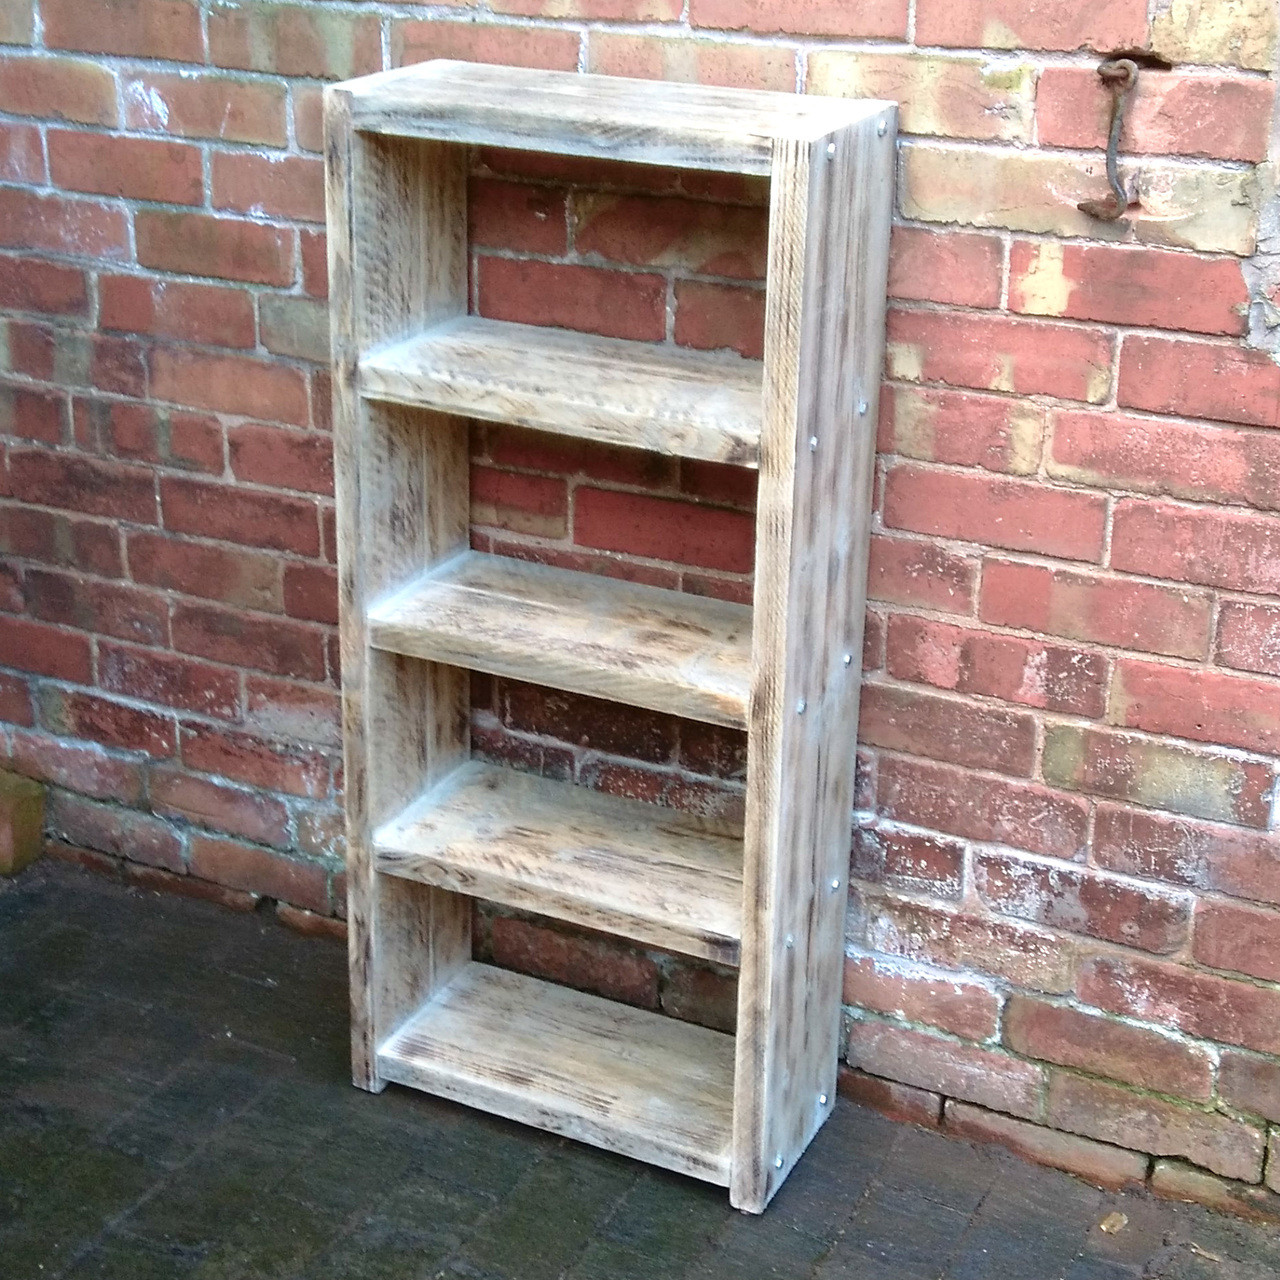 Beautiful 4 Shelve Solid Reclaimed Wood Bookcase Display Or Storage 118x52x22cm